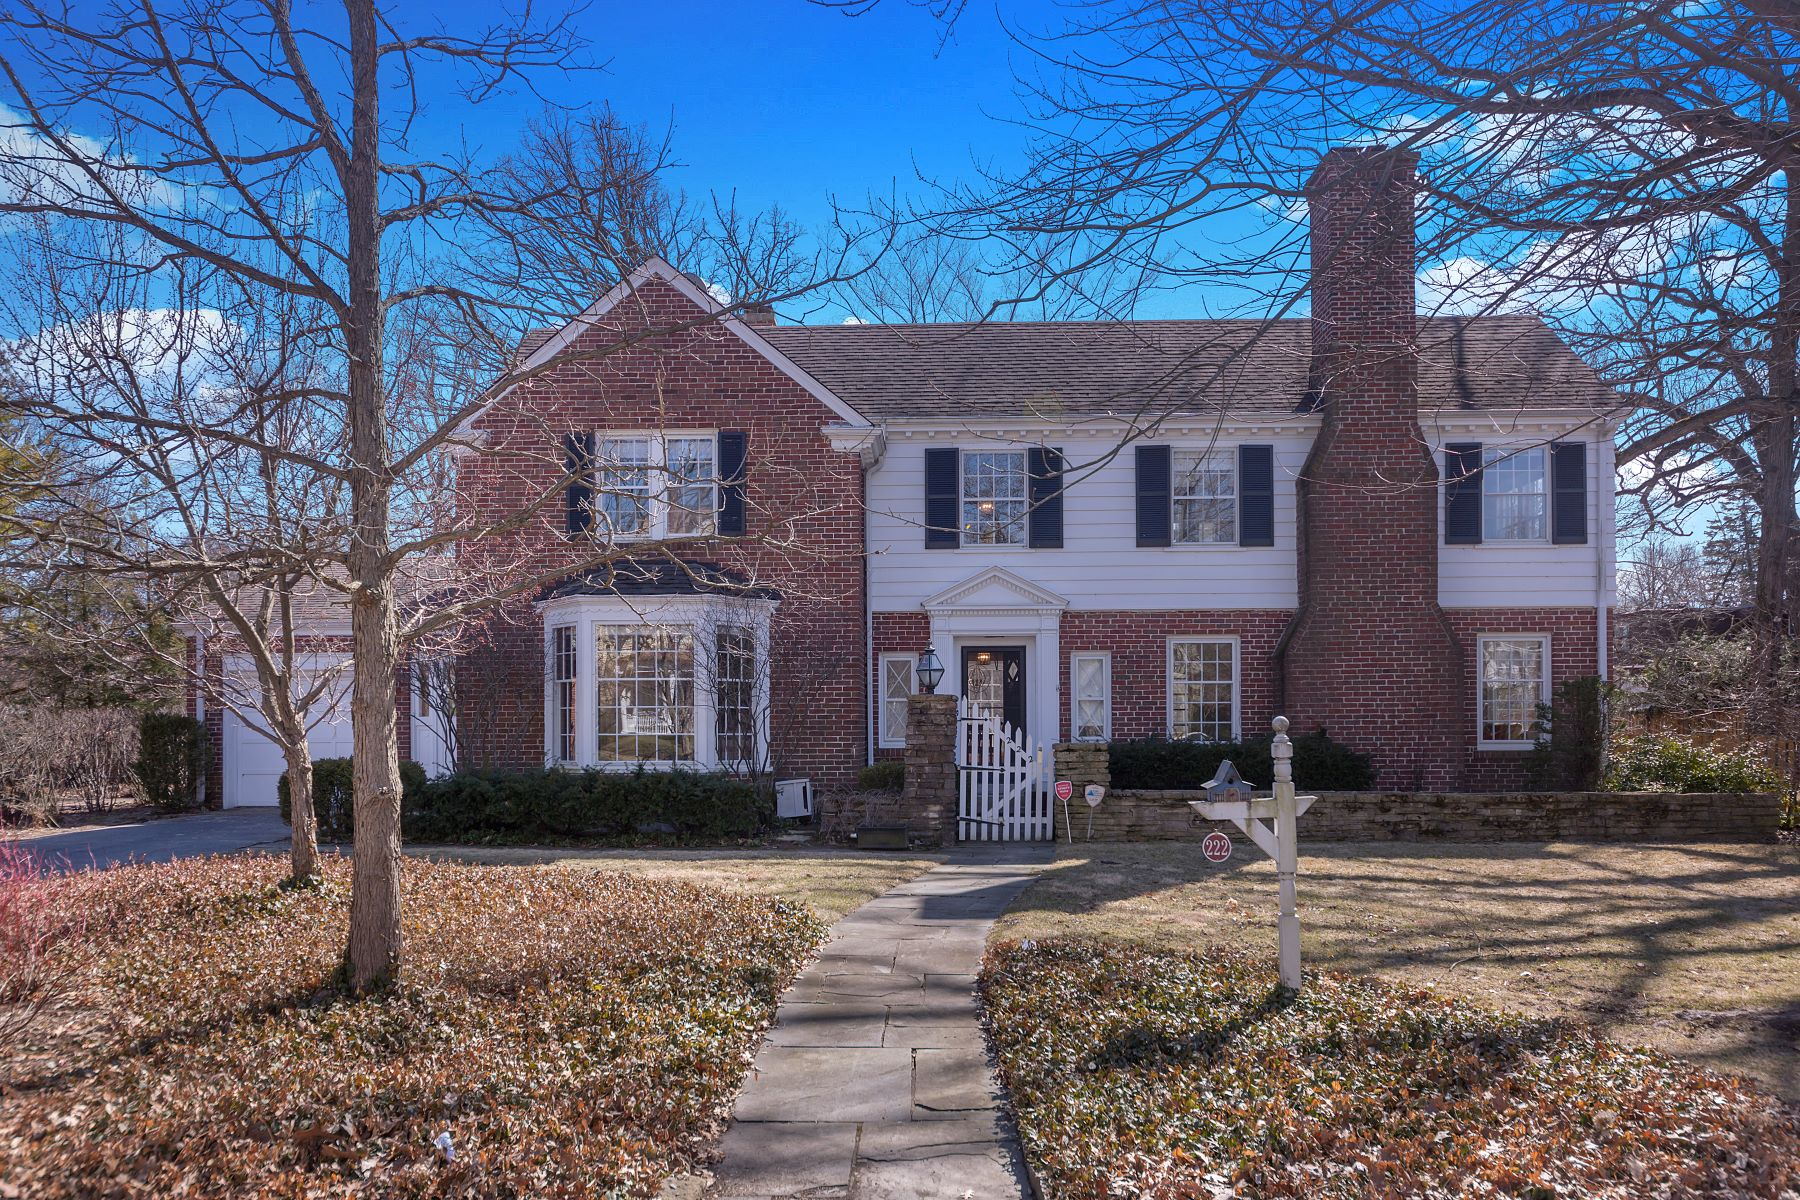 Single Family Home for Active at Stately Evanston Home 222 Dempster Street Evanston, Illinois 60202 United States